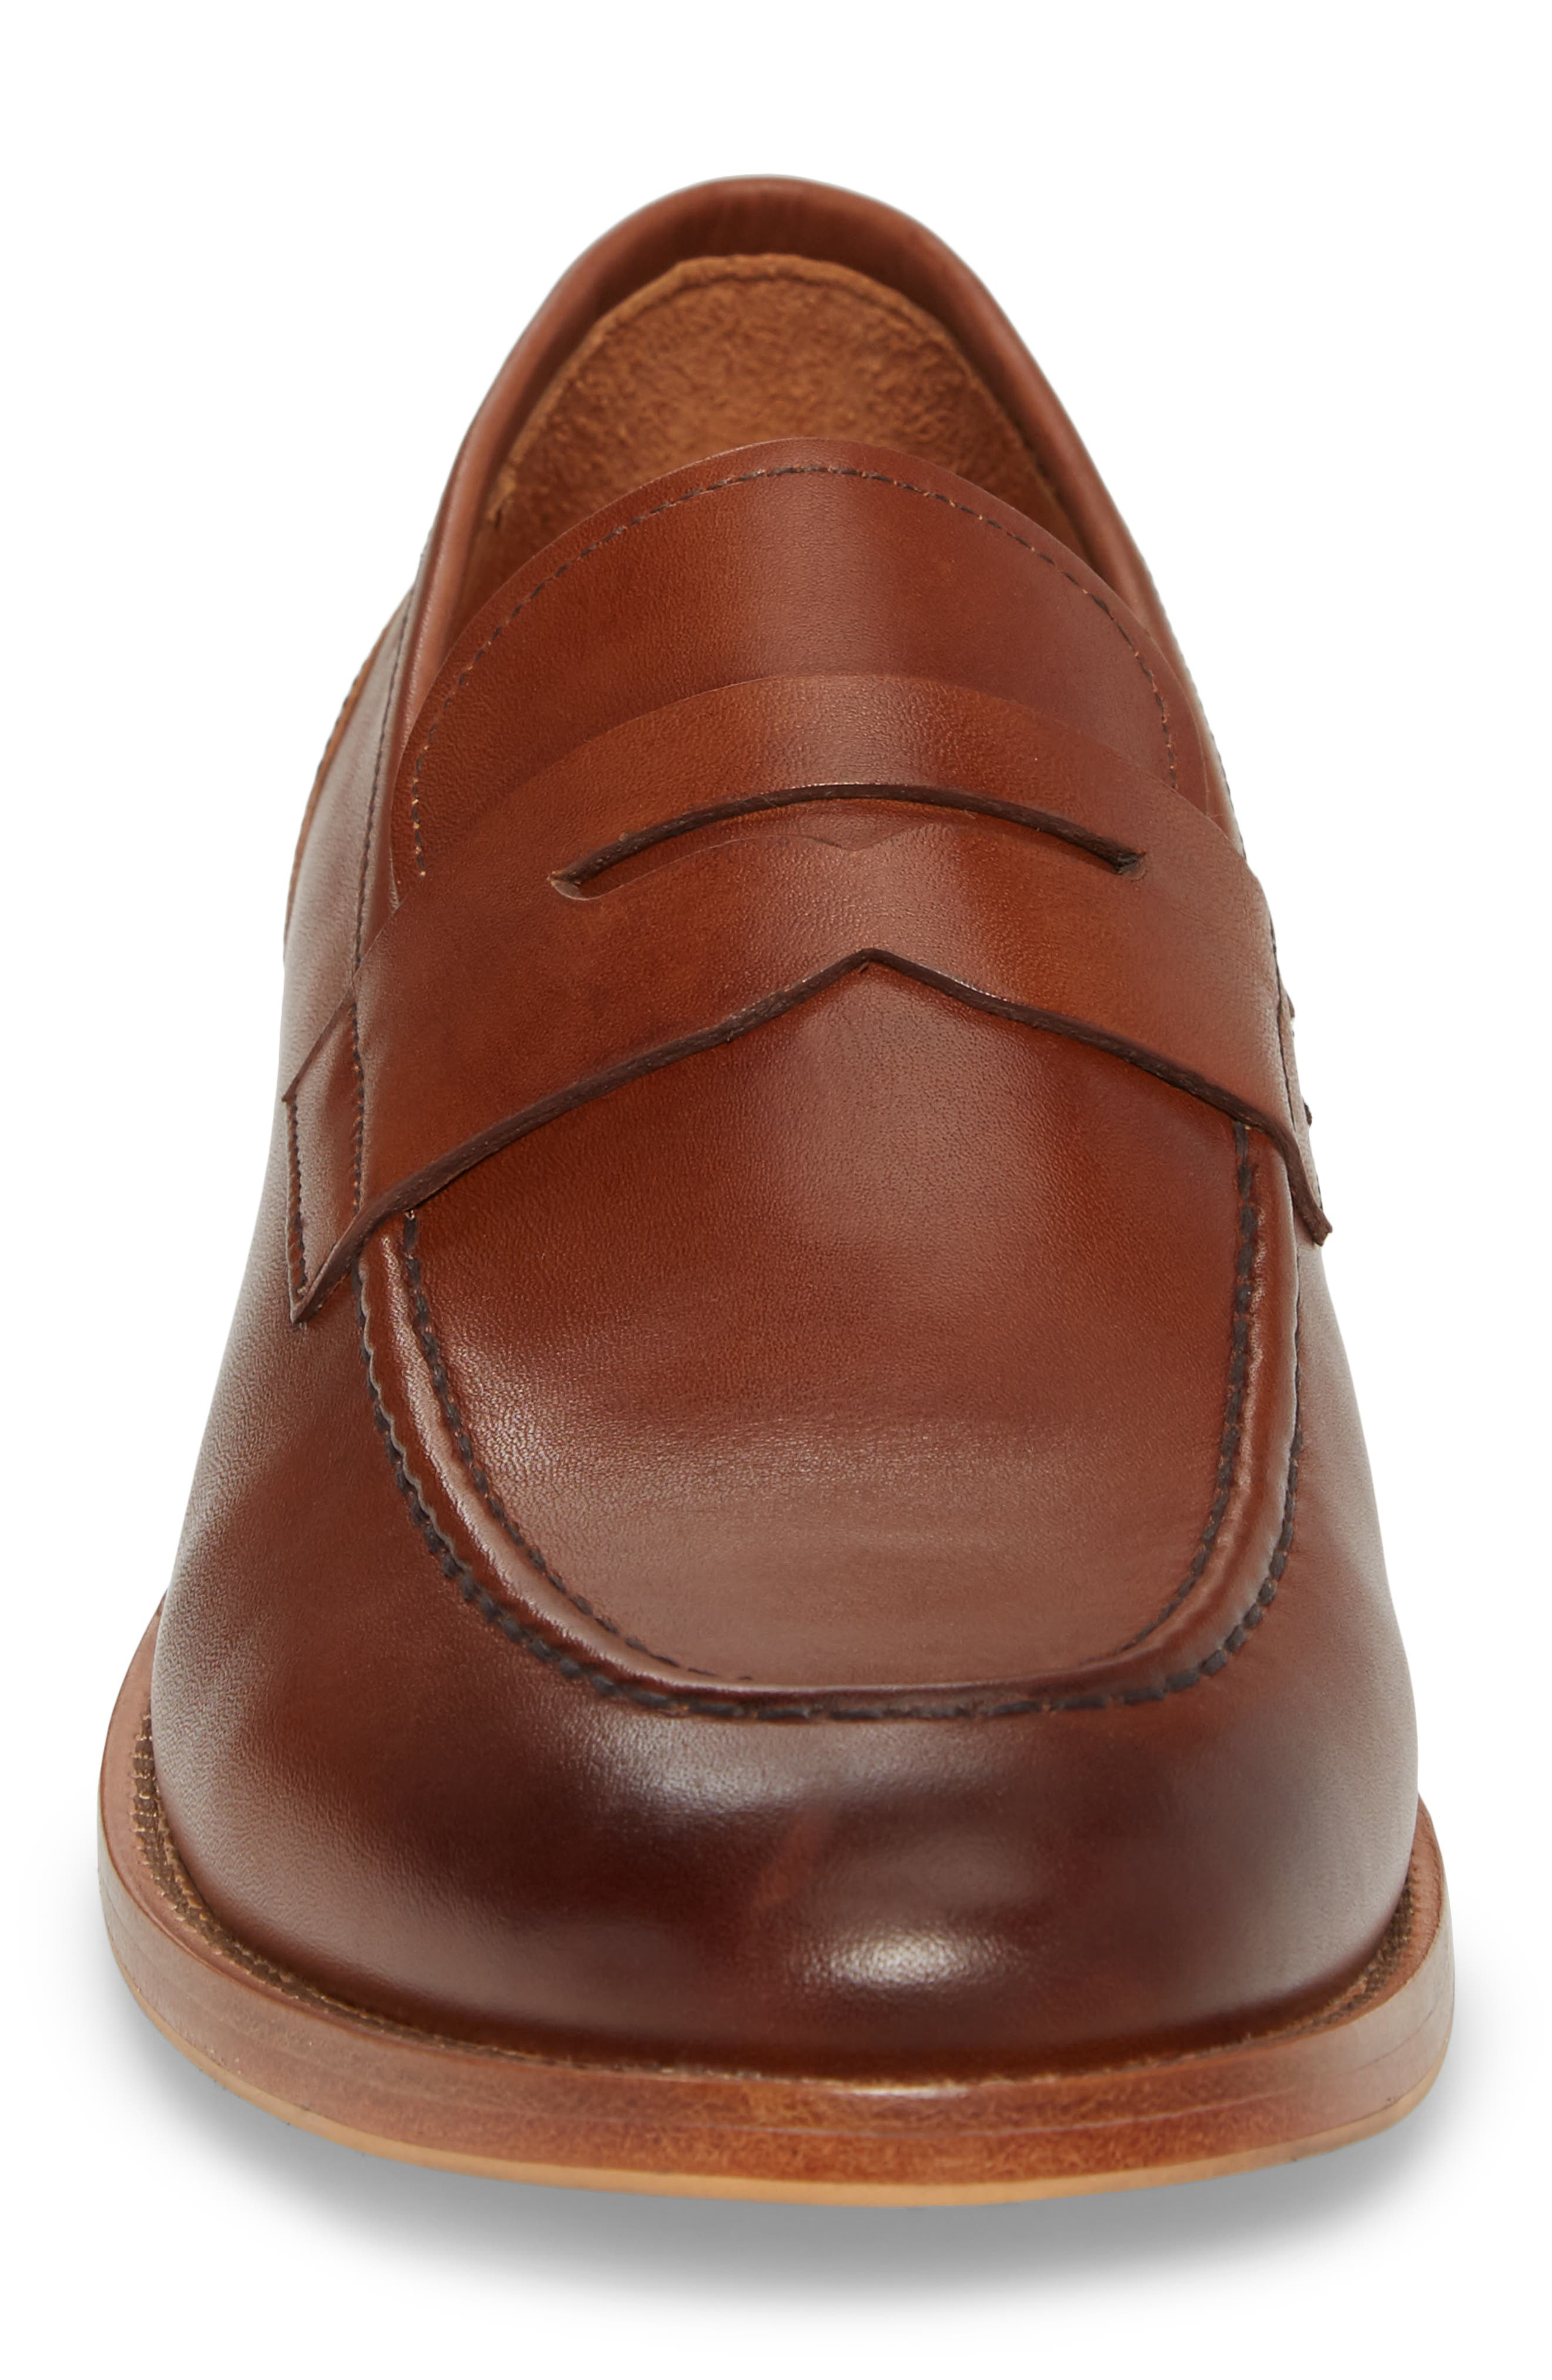 Lucas Loafer,                             Alternate thumbnail 4, color,                             Luggage Leather